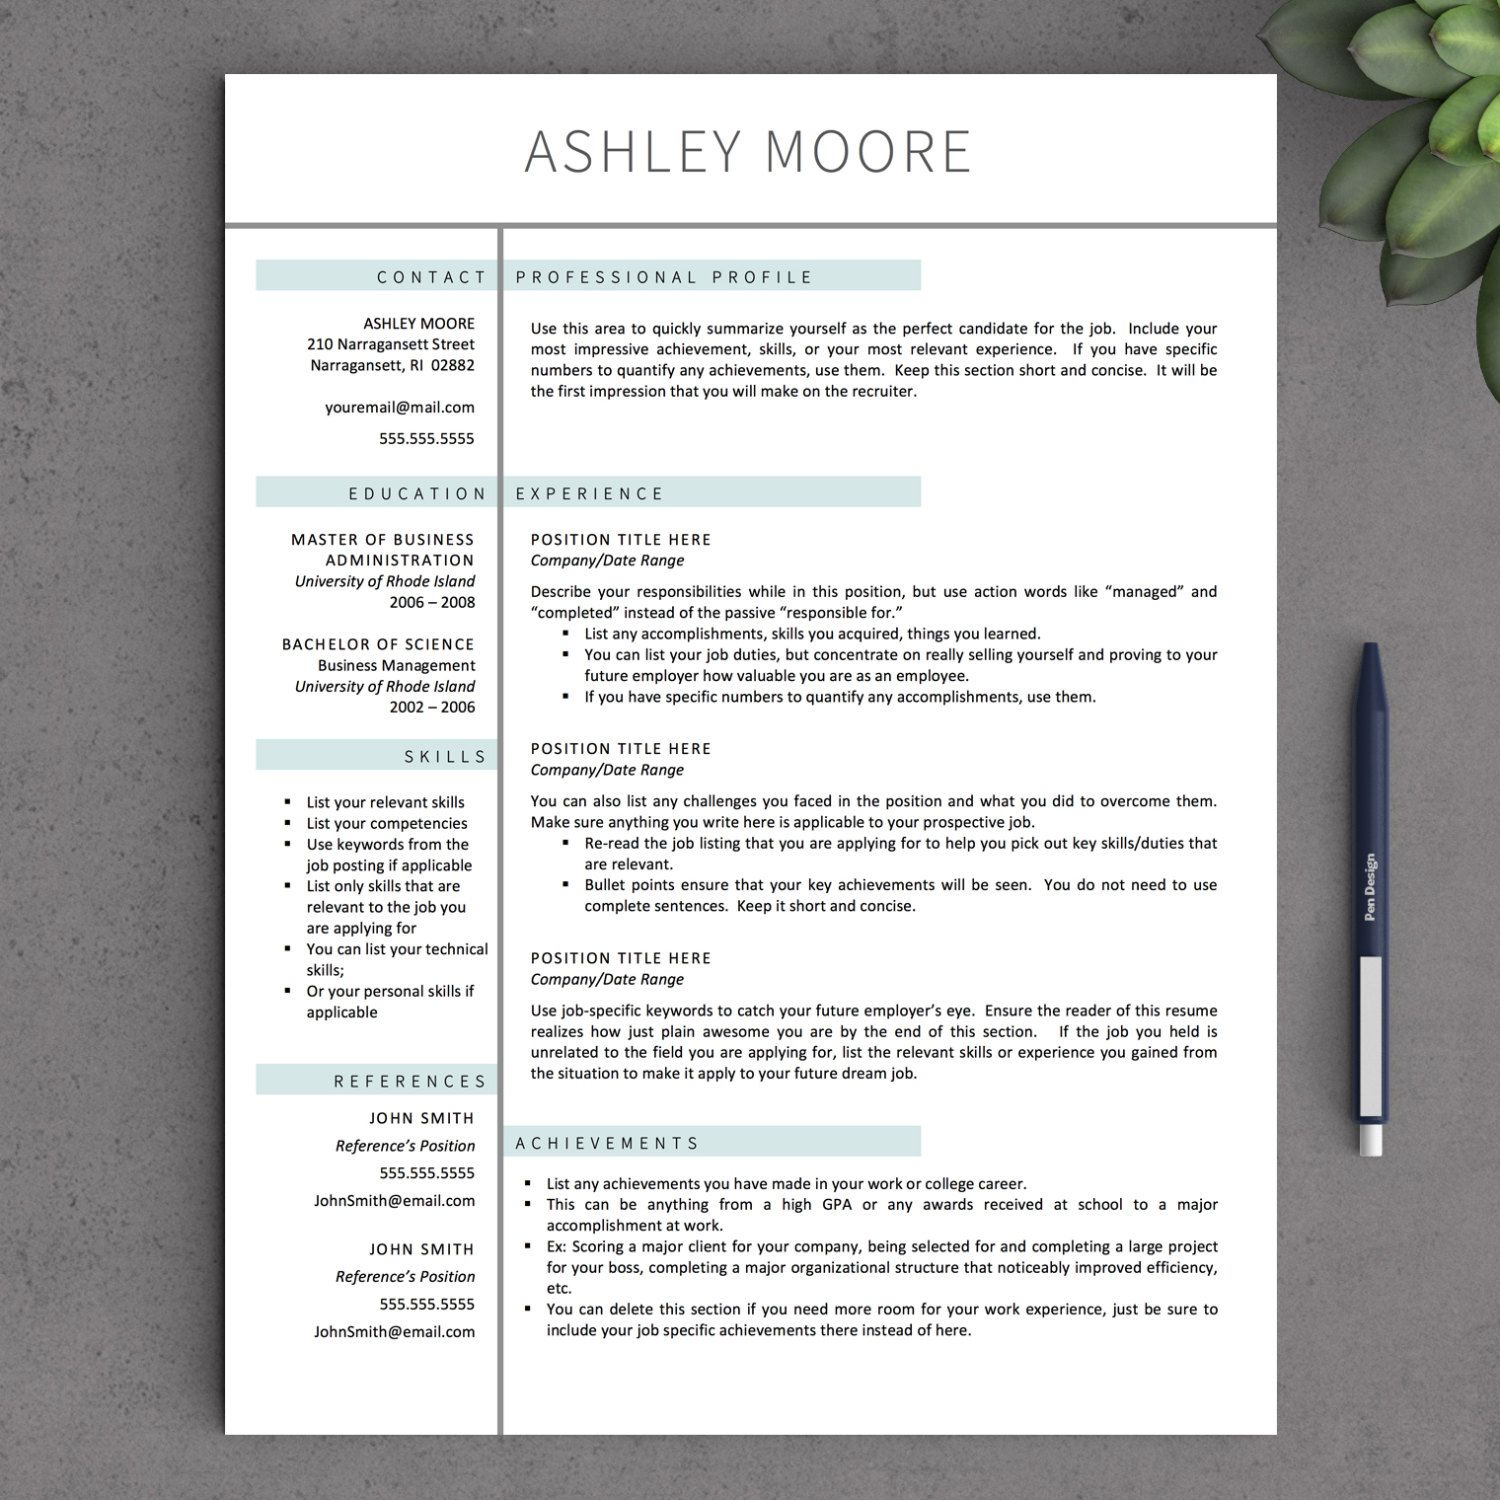 apple pages resume template download apple pages resume template download apple pages resume templates free